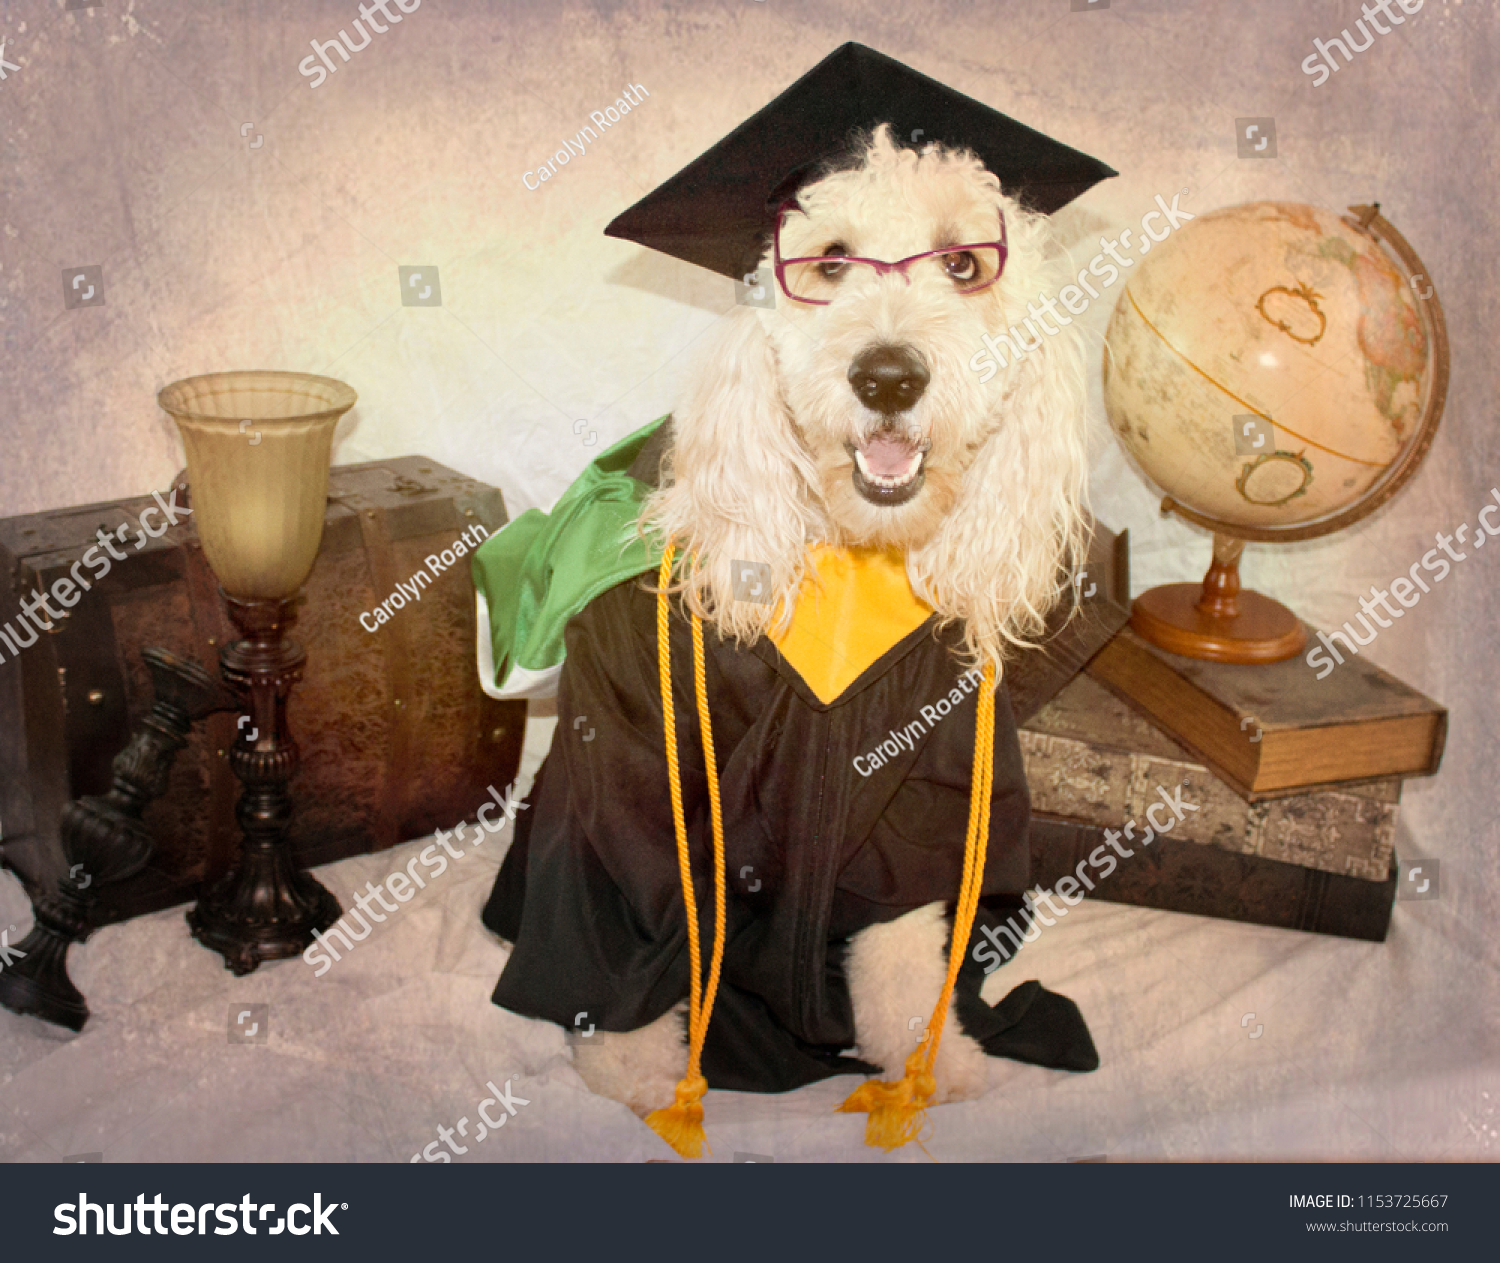 Scholarly Dog Dressed Graduation Cap Gown Stock Photo (Royalty Free ...